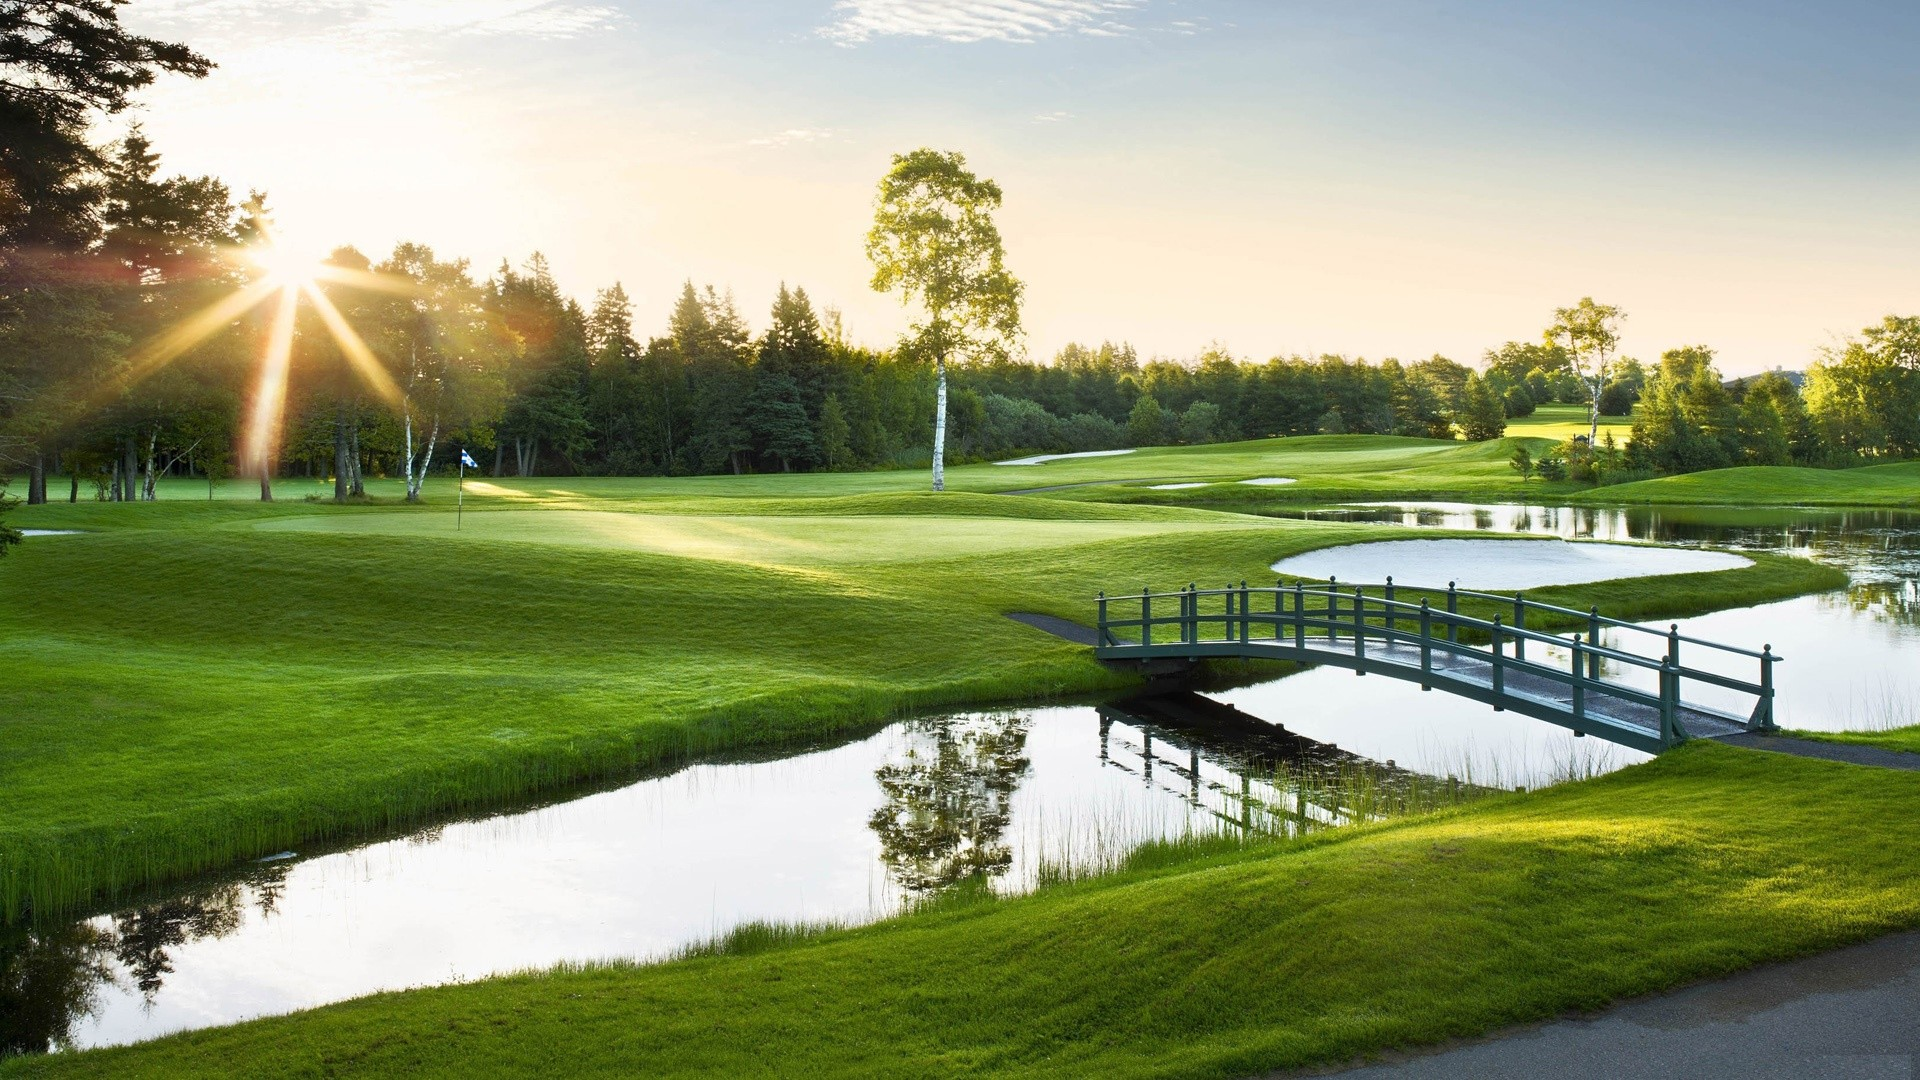 Res: 1920x1080, Pictures images golf backgrounds download free.